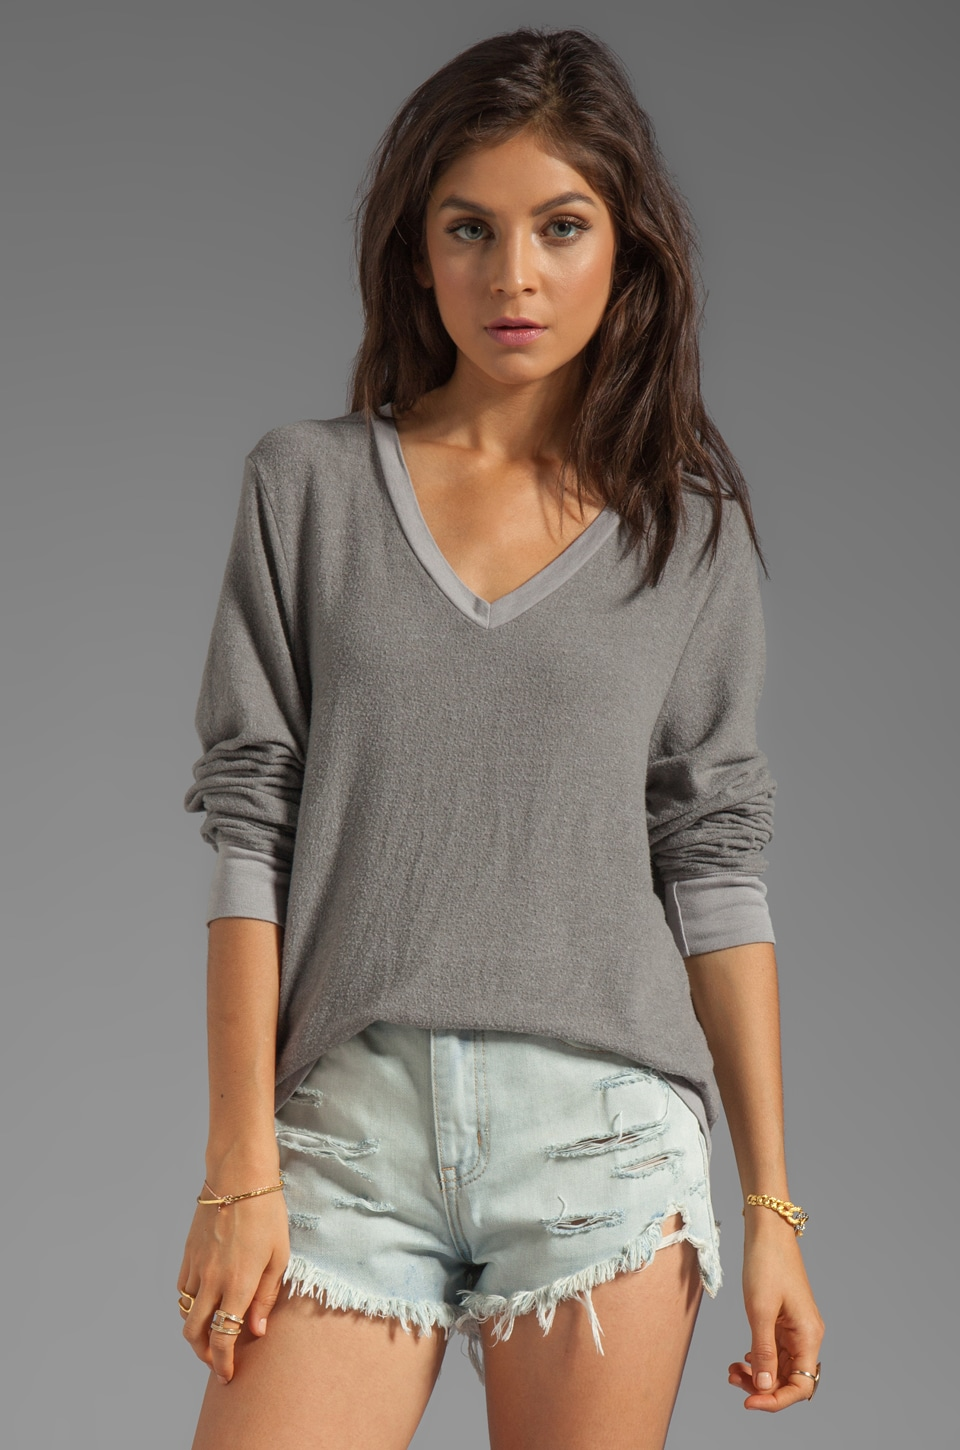 Wildfox Couture Baggy Beach V-Neck in Vintage Grey